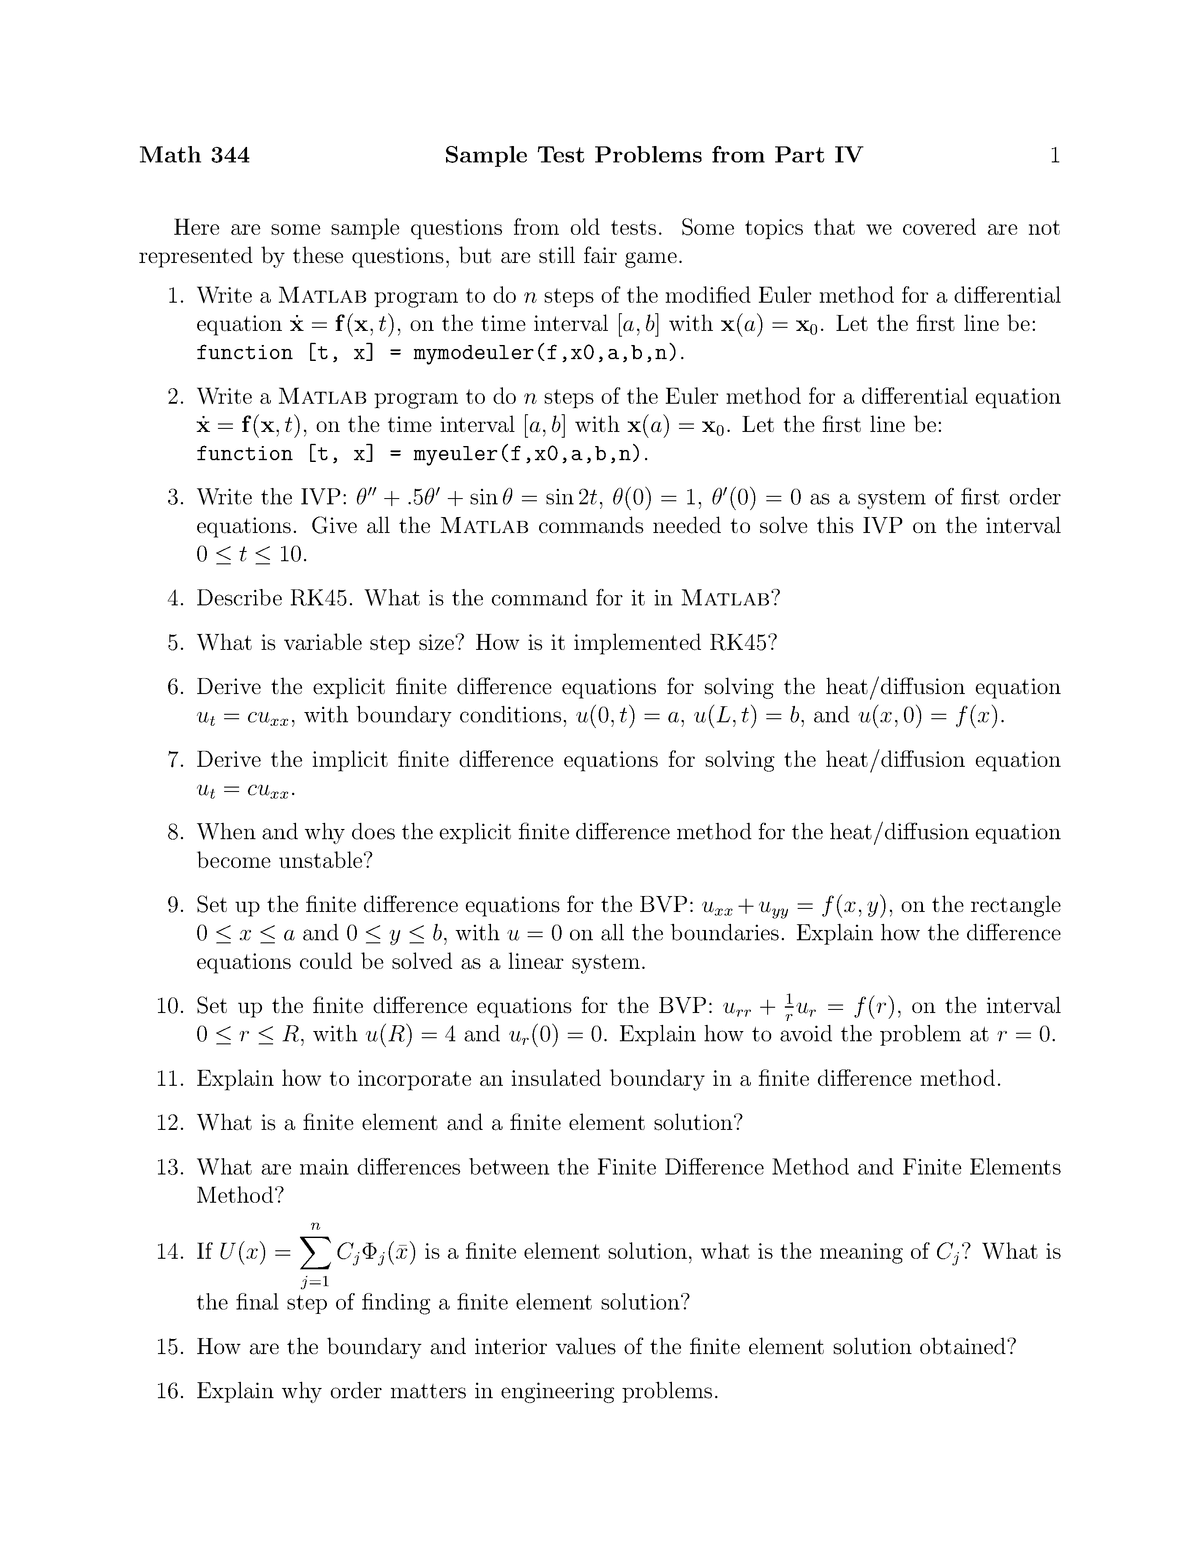 Sample/practice exam 2008, questions - Samples test problems